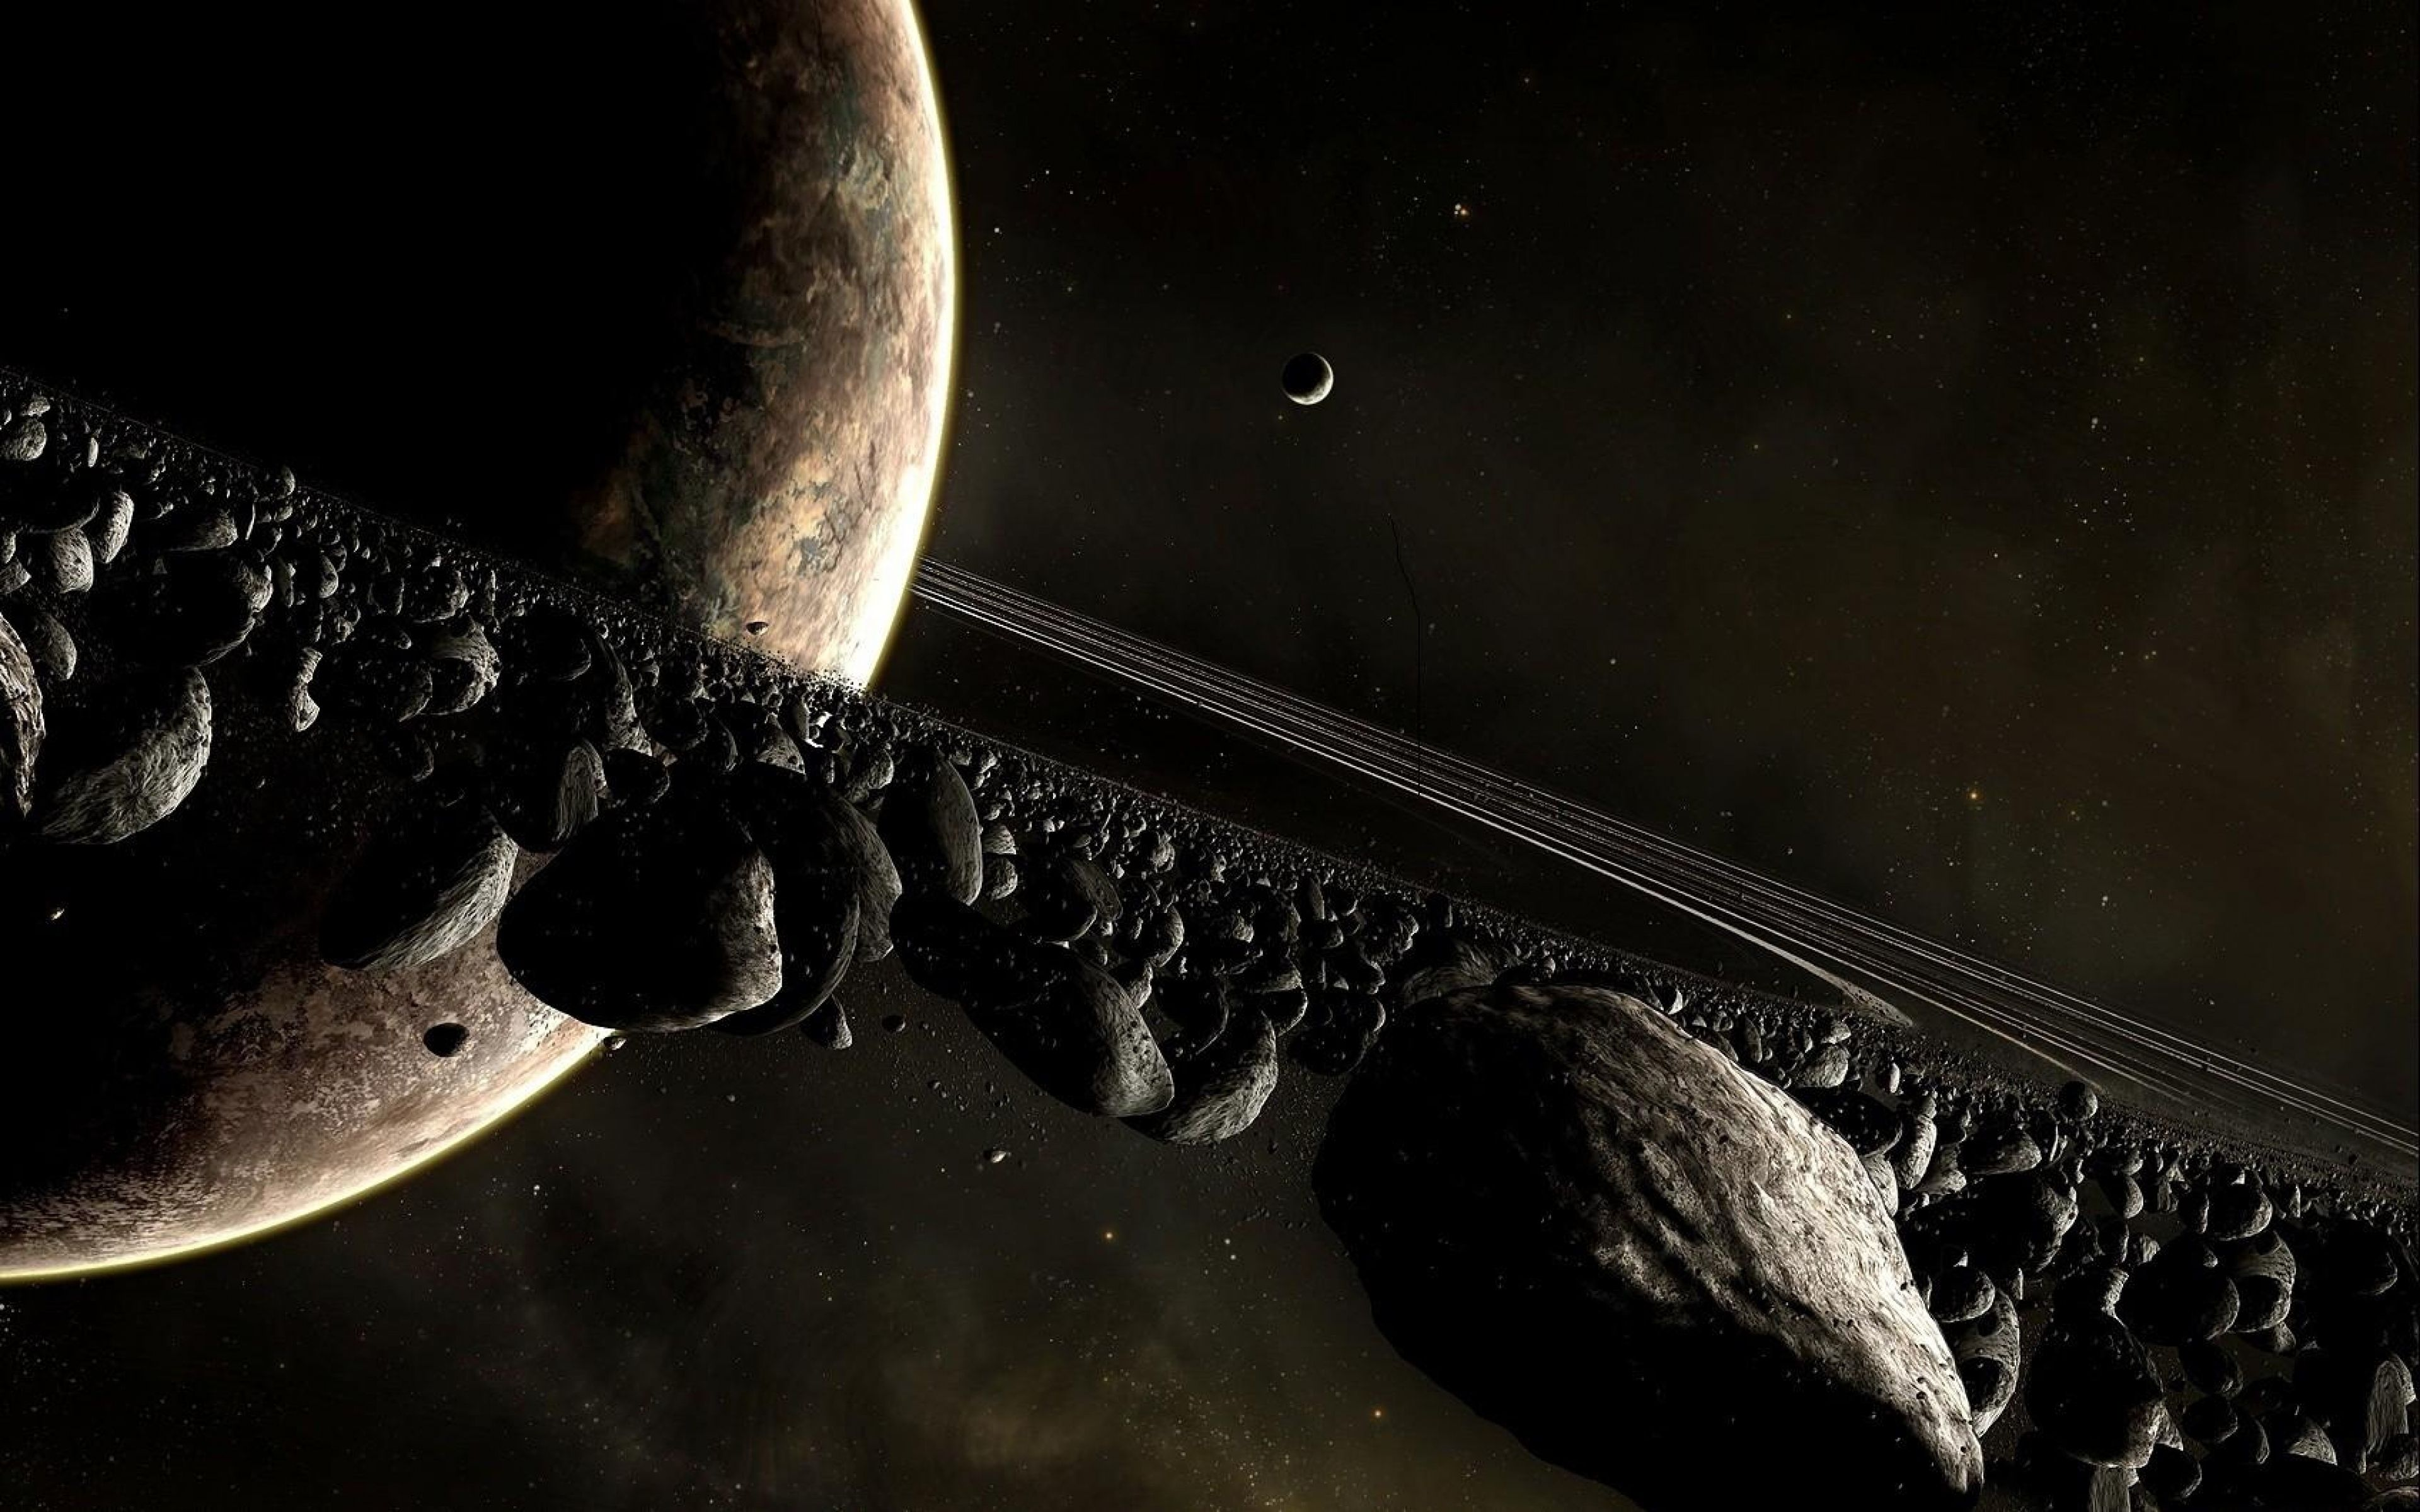 3840x2400 - Asteroid Wallpapers 24